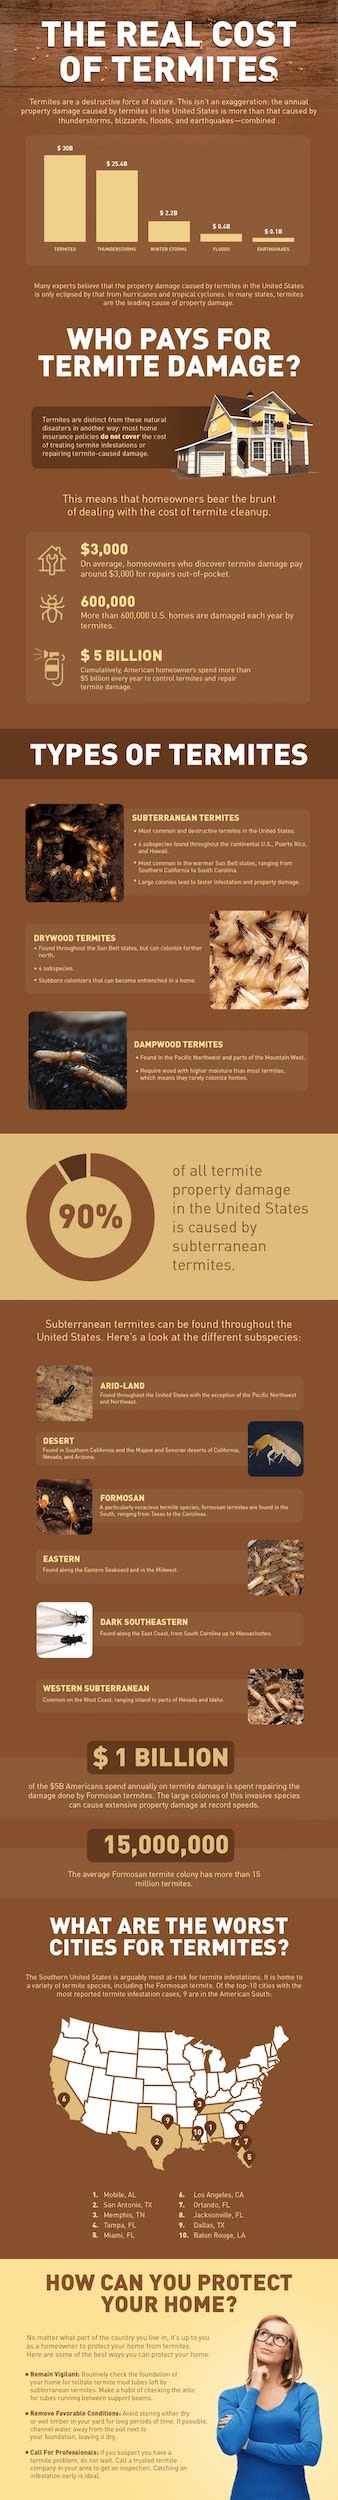 This infographic shows the real monetary costs of termites, nationwide, and how they can be considered a natural disaster in many communities.